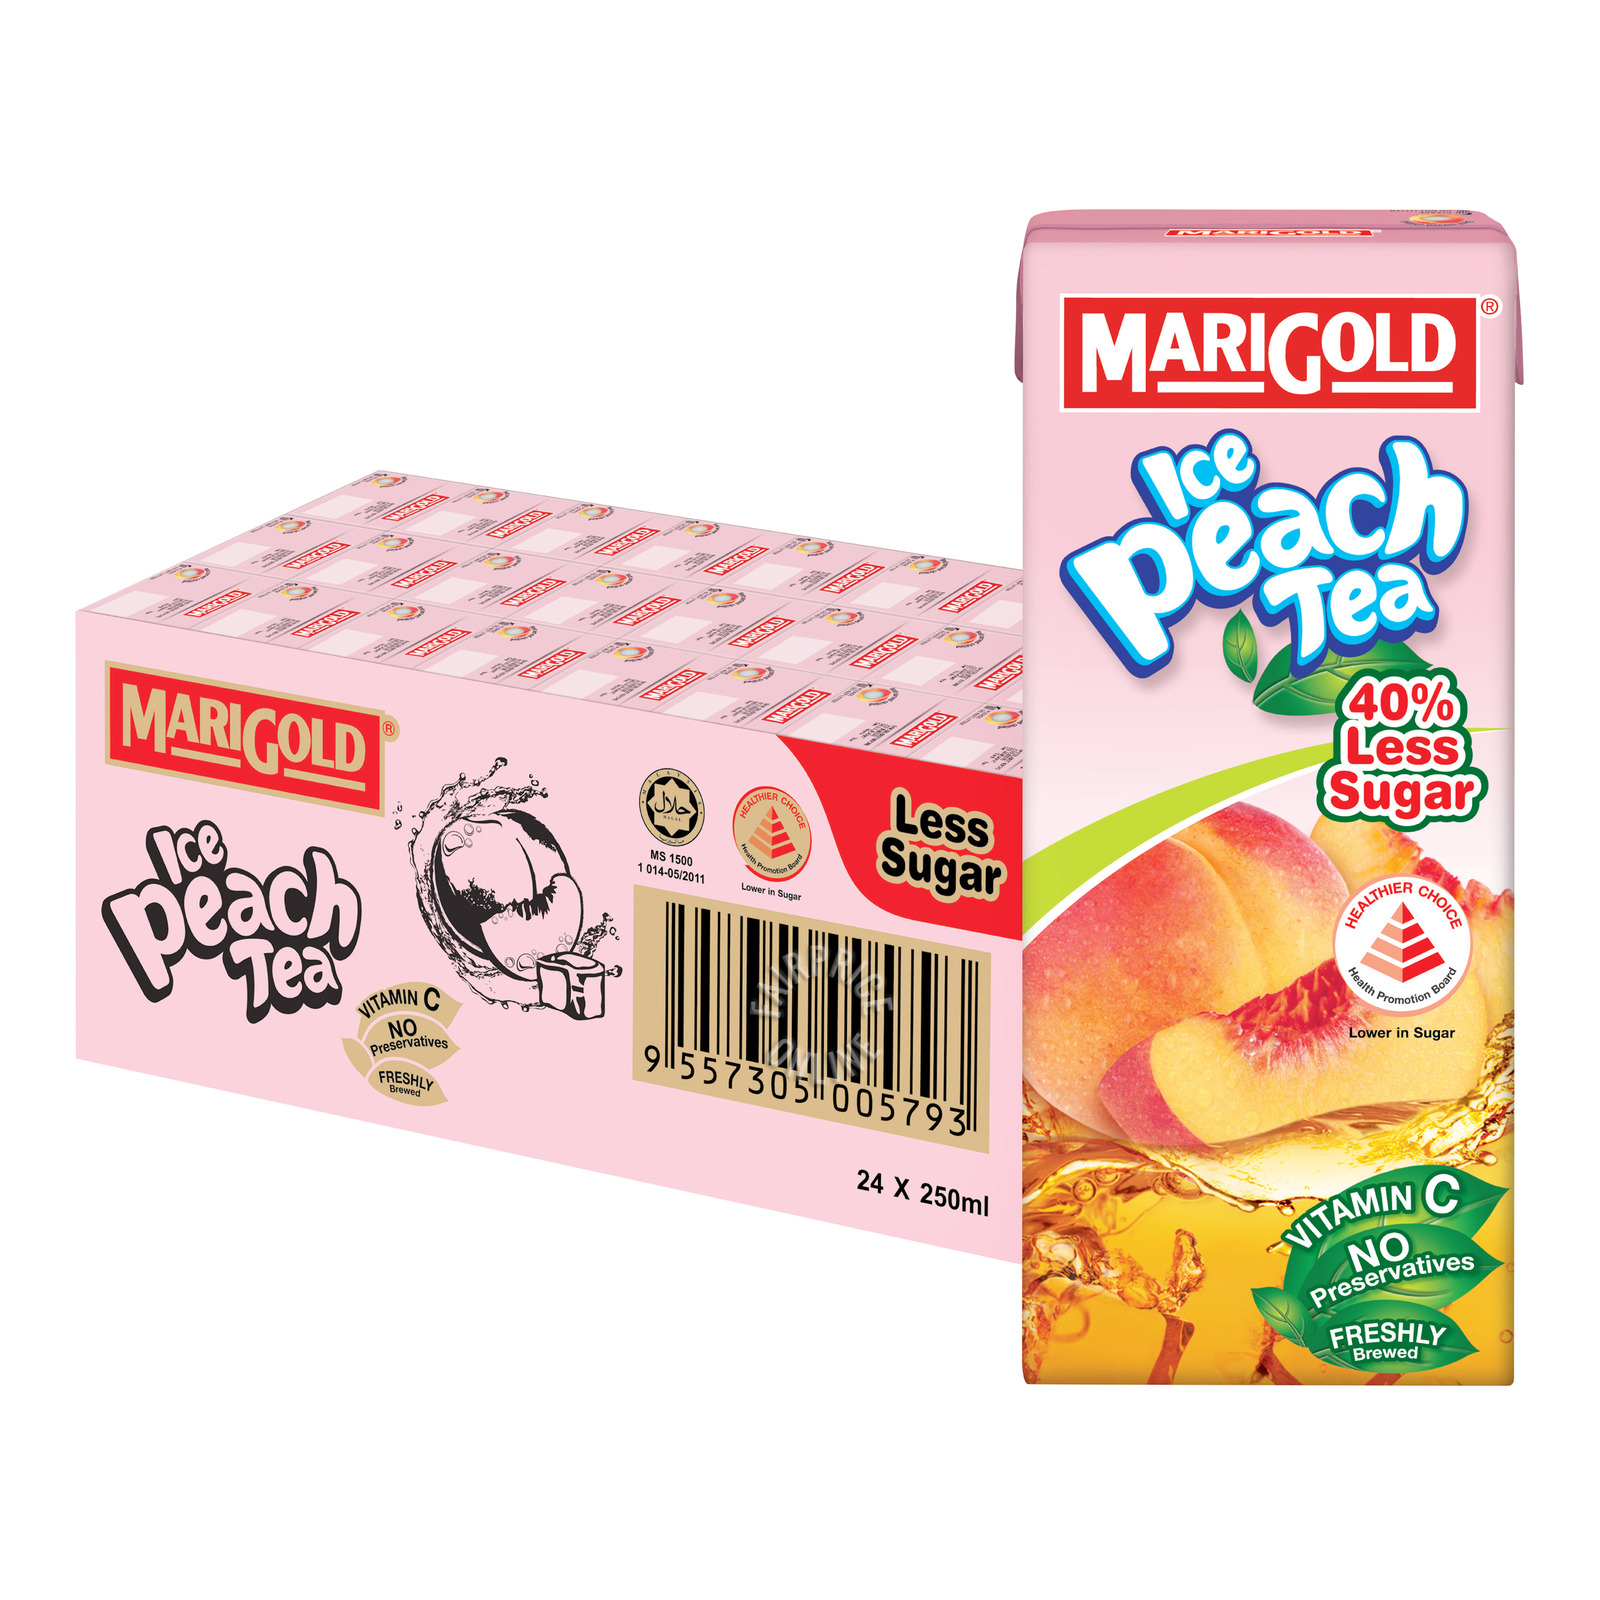 Marigold Packet Drink - Ice Peach Tea (Less Sweet)